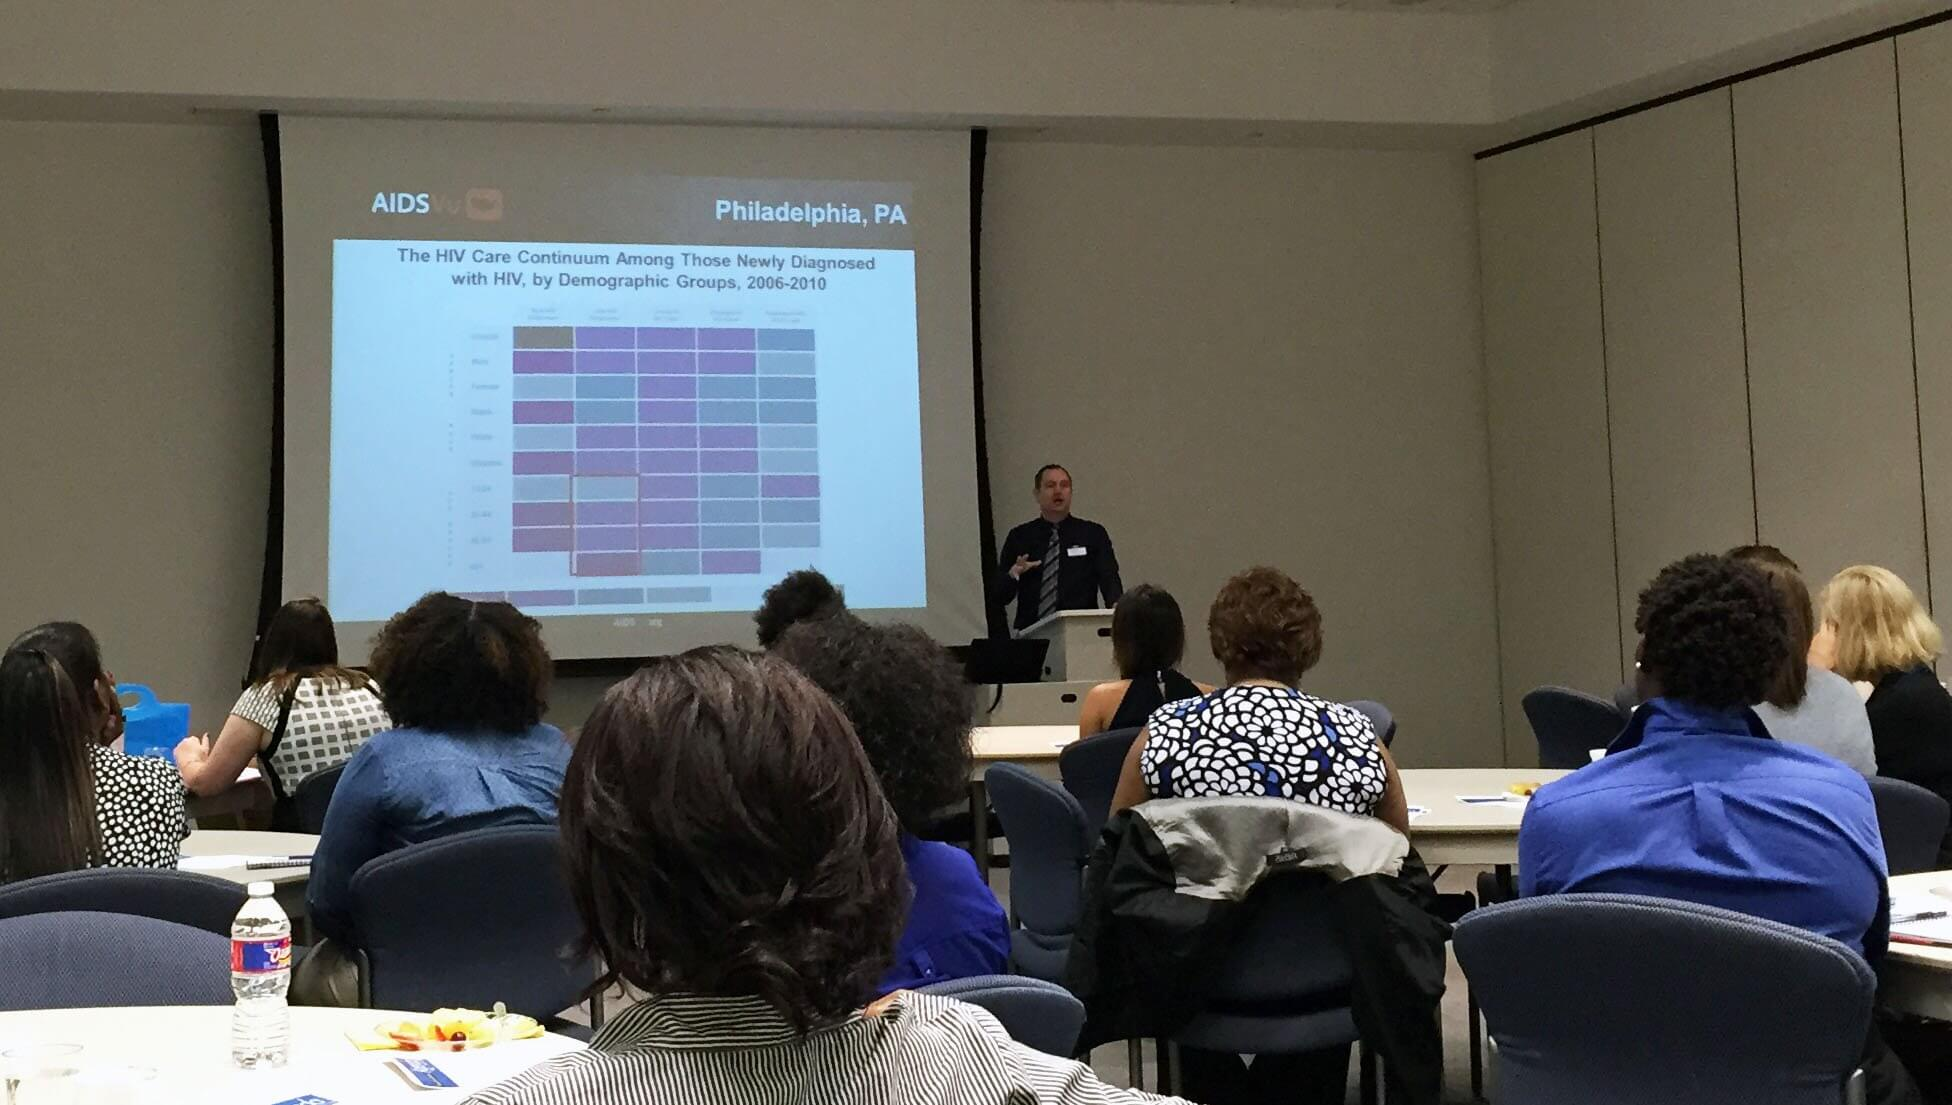 Patrick Sullivan, DVM, Ph.D., epidemiologist and investigator at the Center for AIDS Research at Emory University's Rollins School of Public Health, presents data on the prevalence of HIV in the U.S.